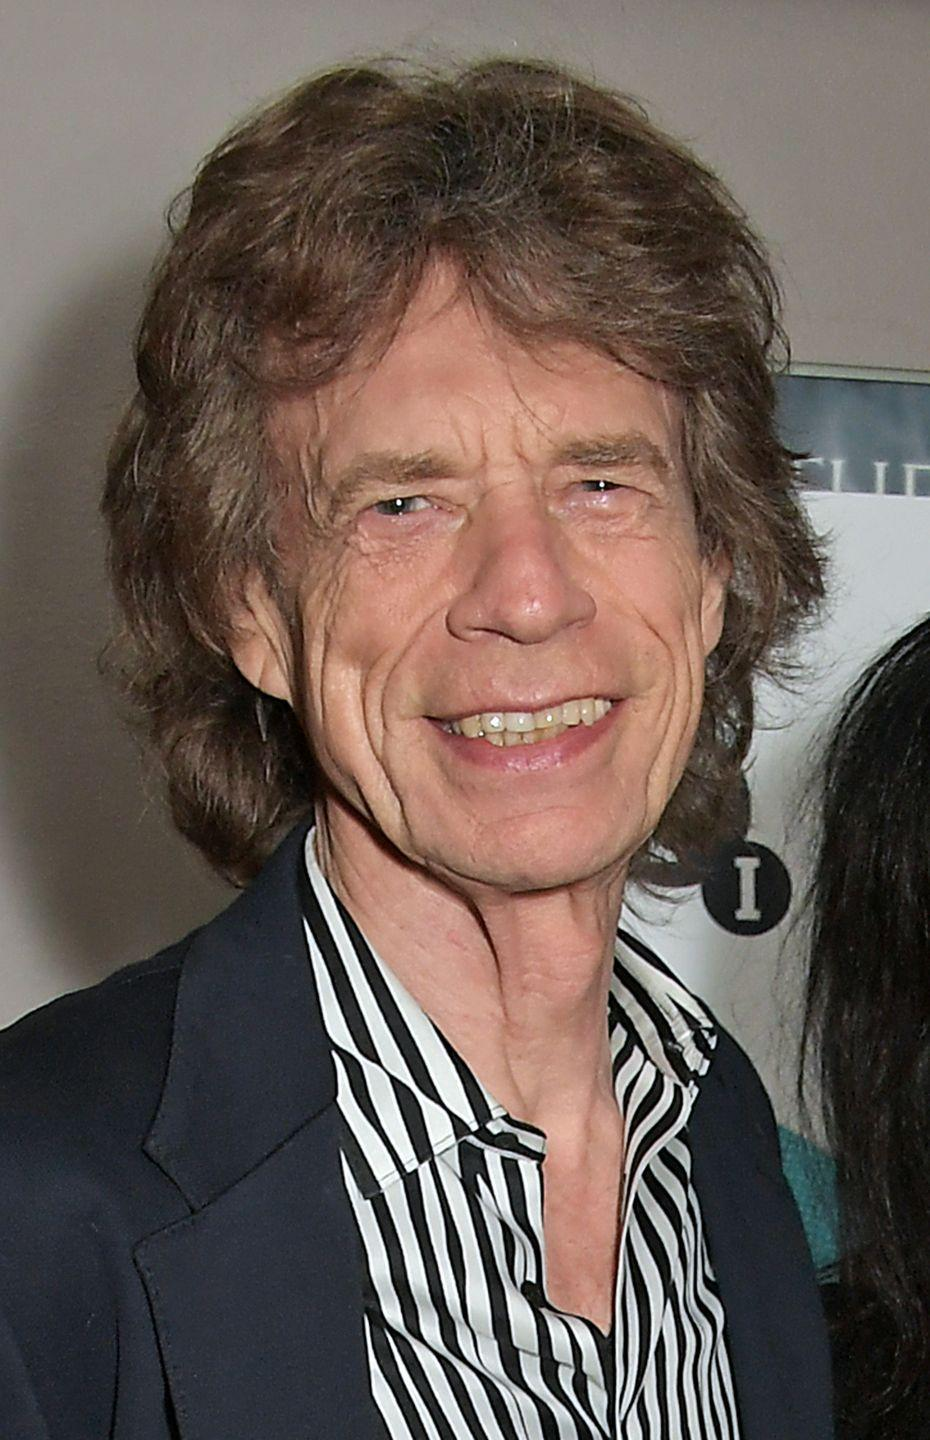 <p>Rock icon Mick Jagger is all about being creative and taking center stage, as any true Leo does. </p><p><strong>Birthday:</strong> July 26, 1943</p>